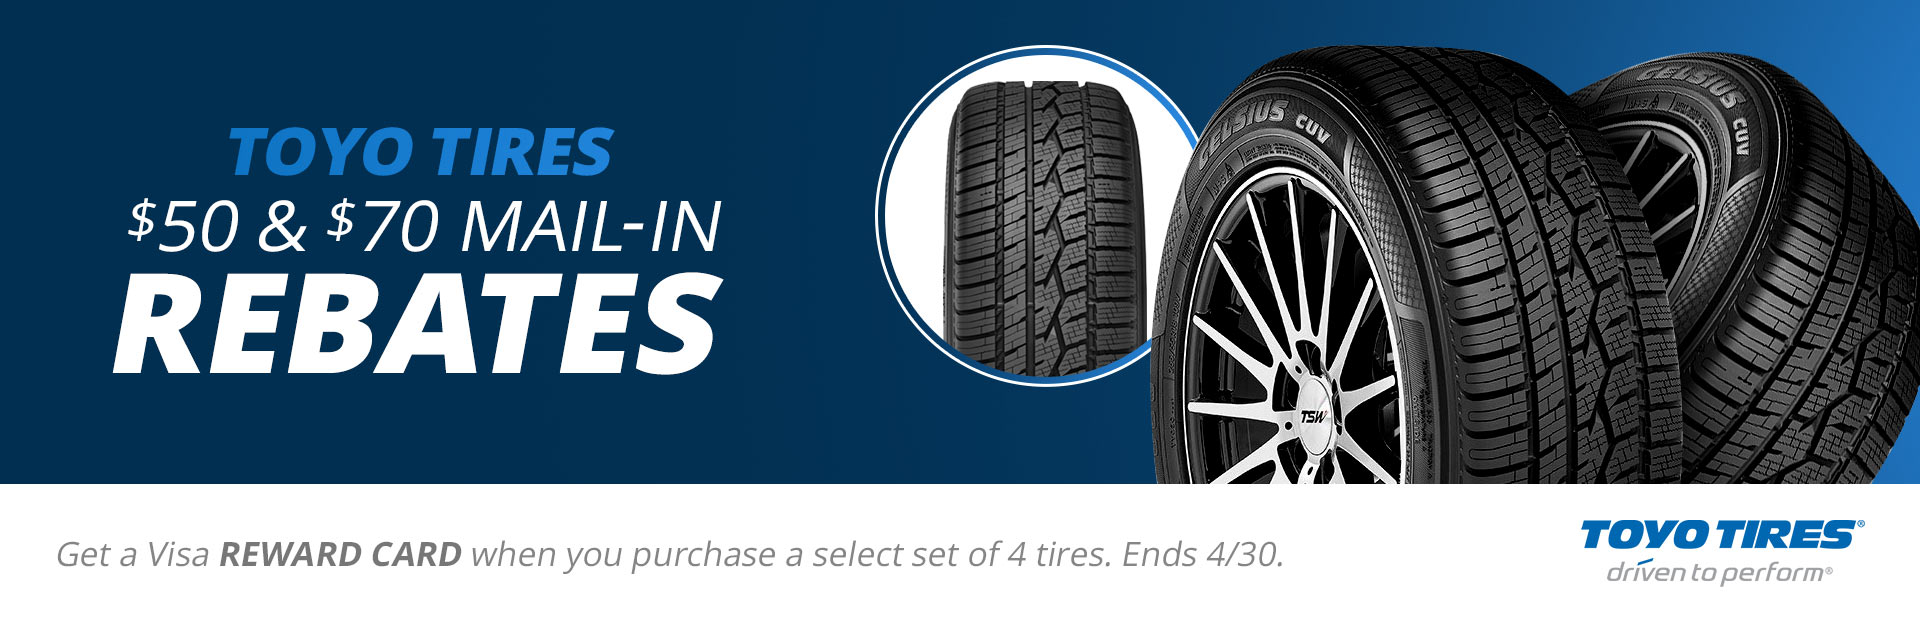 Toyo $50 & $70 Mail-In Rebates: Click here to contact us for details.